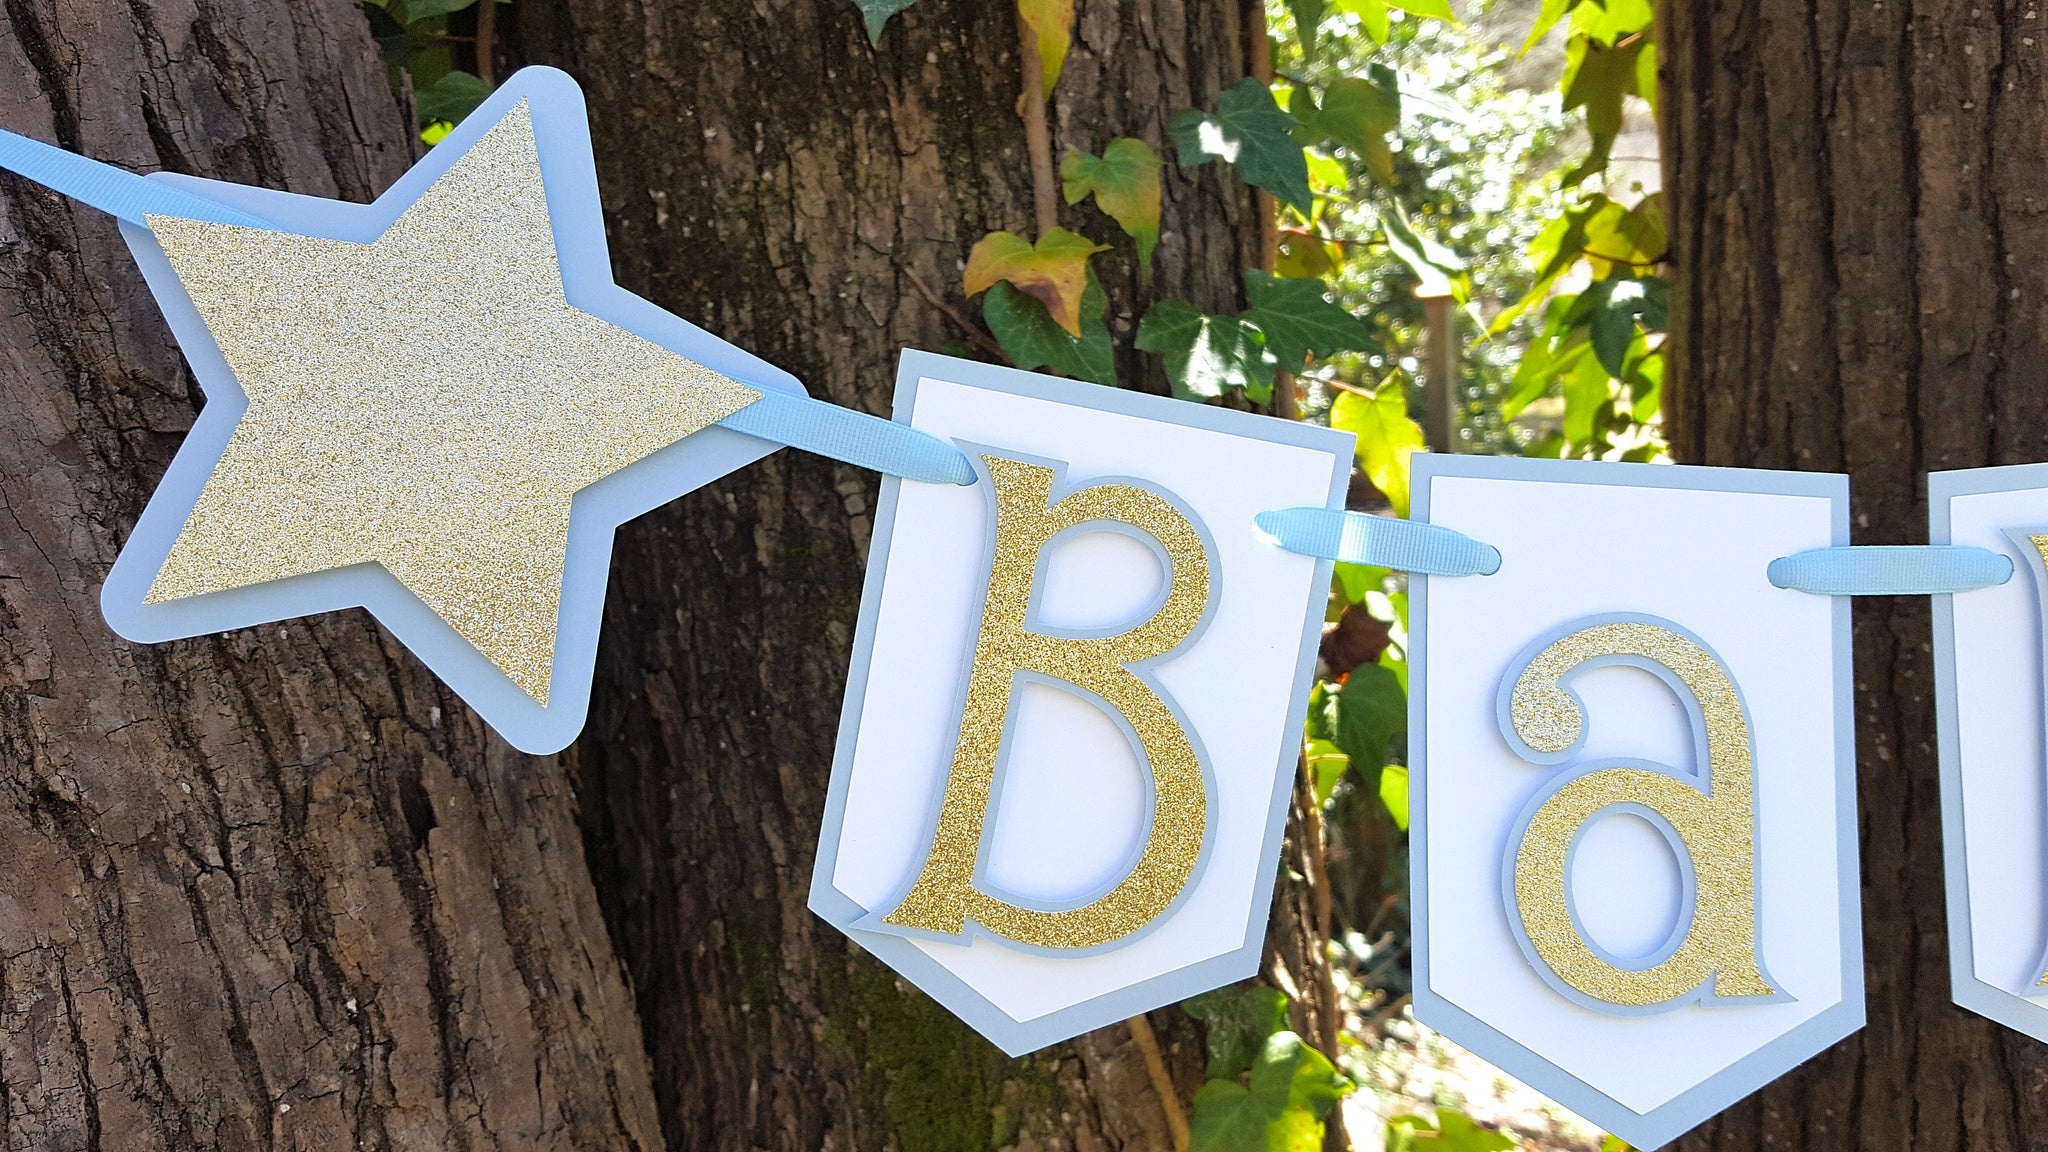 Baby Blue and Gold Pennant Baby Banner, Twinkle Twinkle Little Star Theme, Handcrafted in 3-5 Business Days